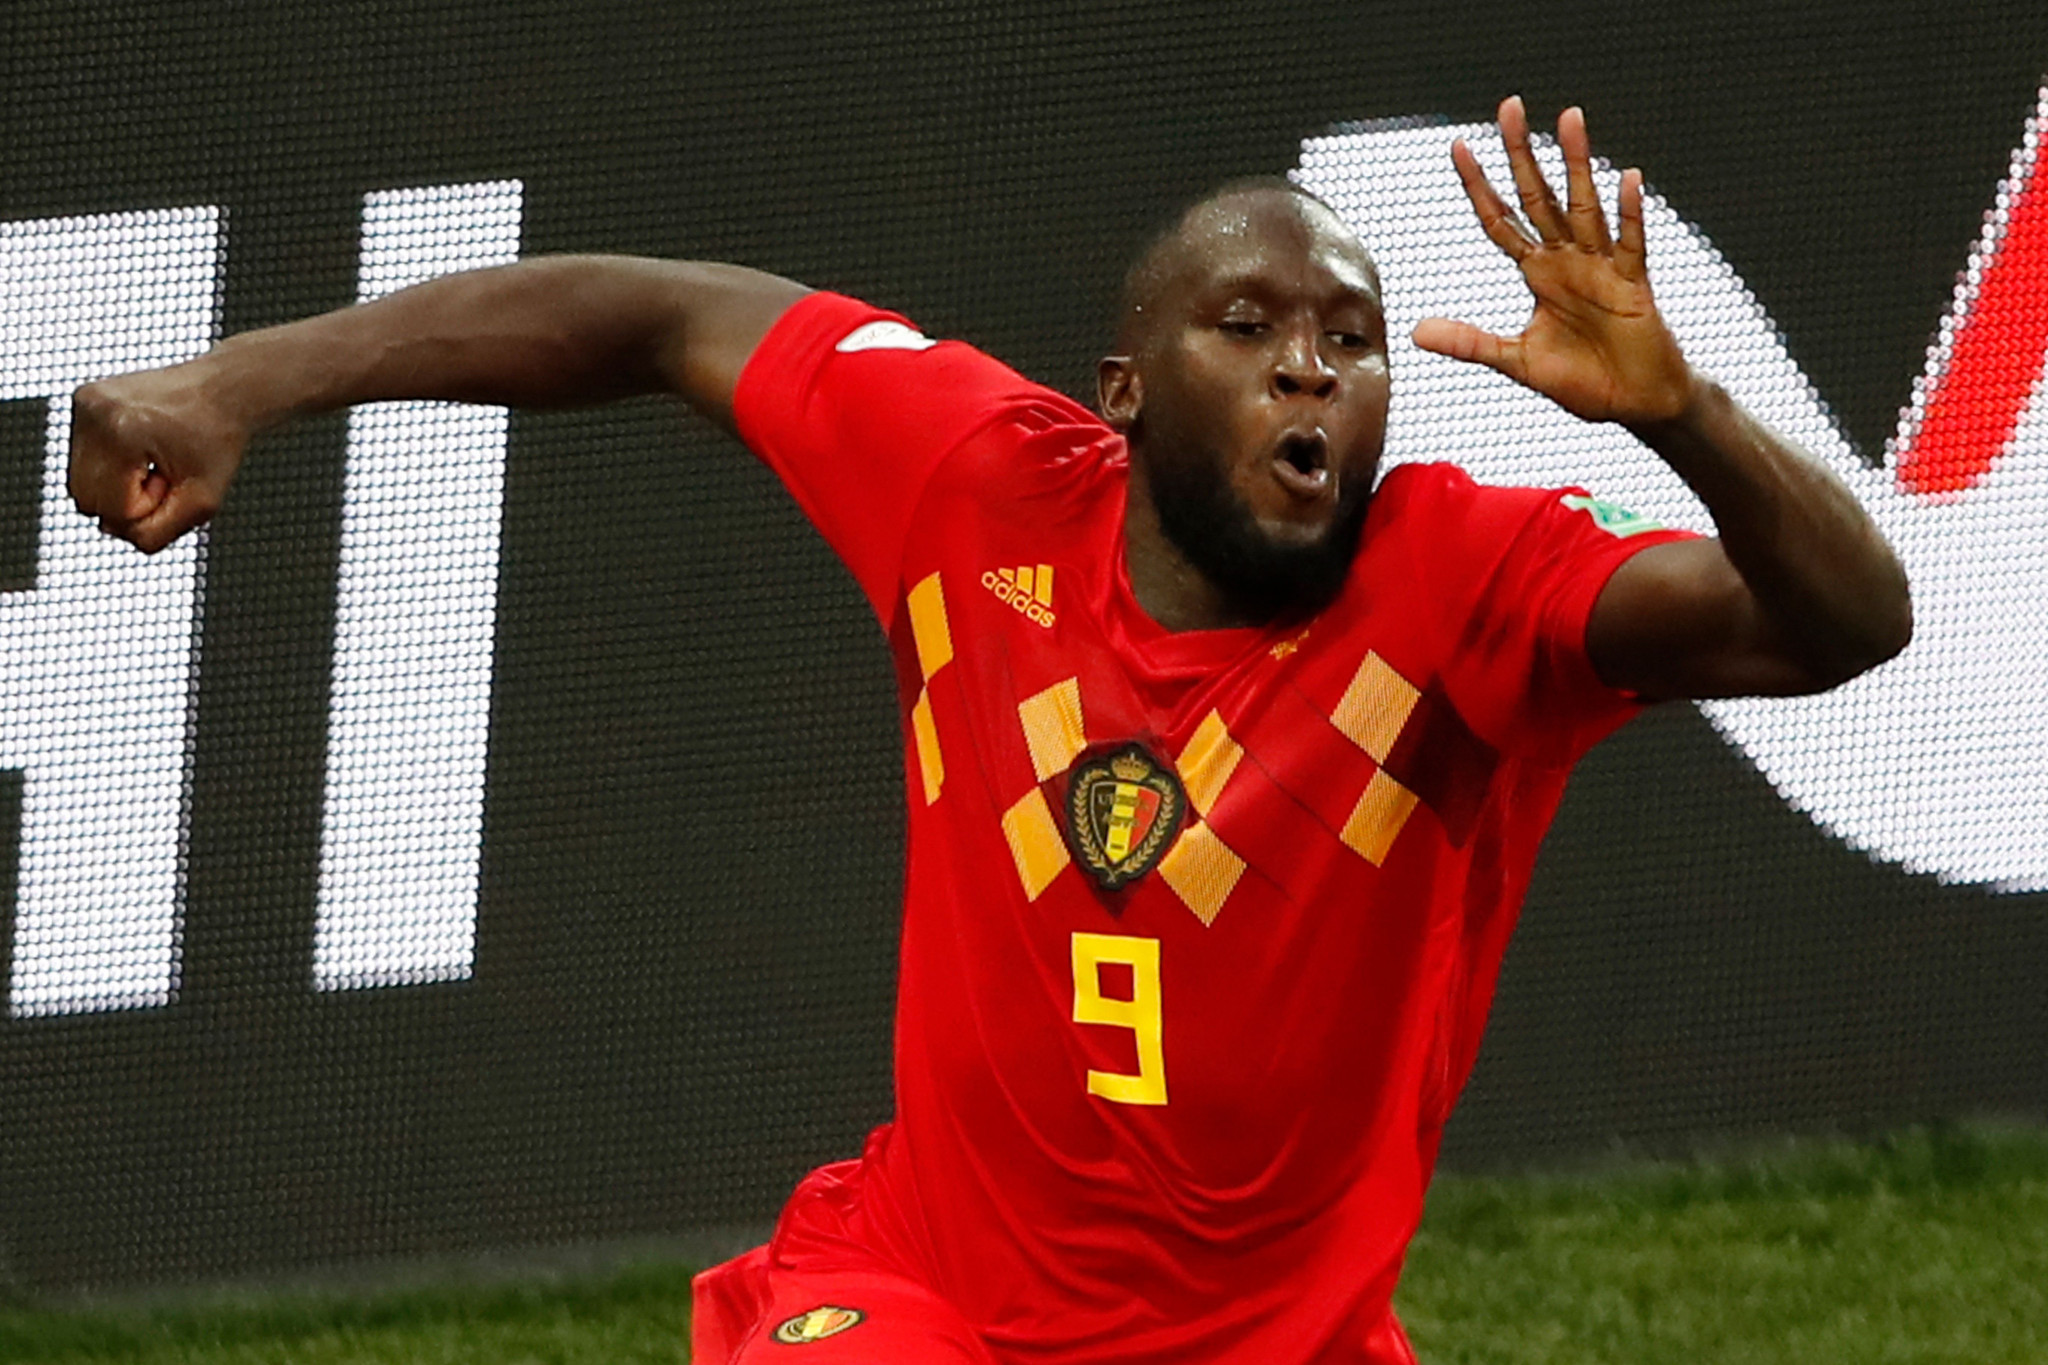 Romelu Lukaku scored twice for Belgium in their win over Panama ©Getty Images